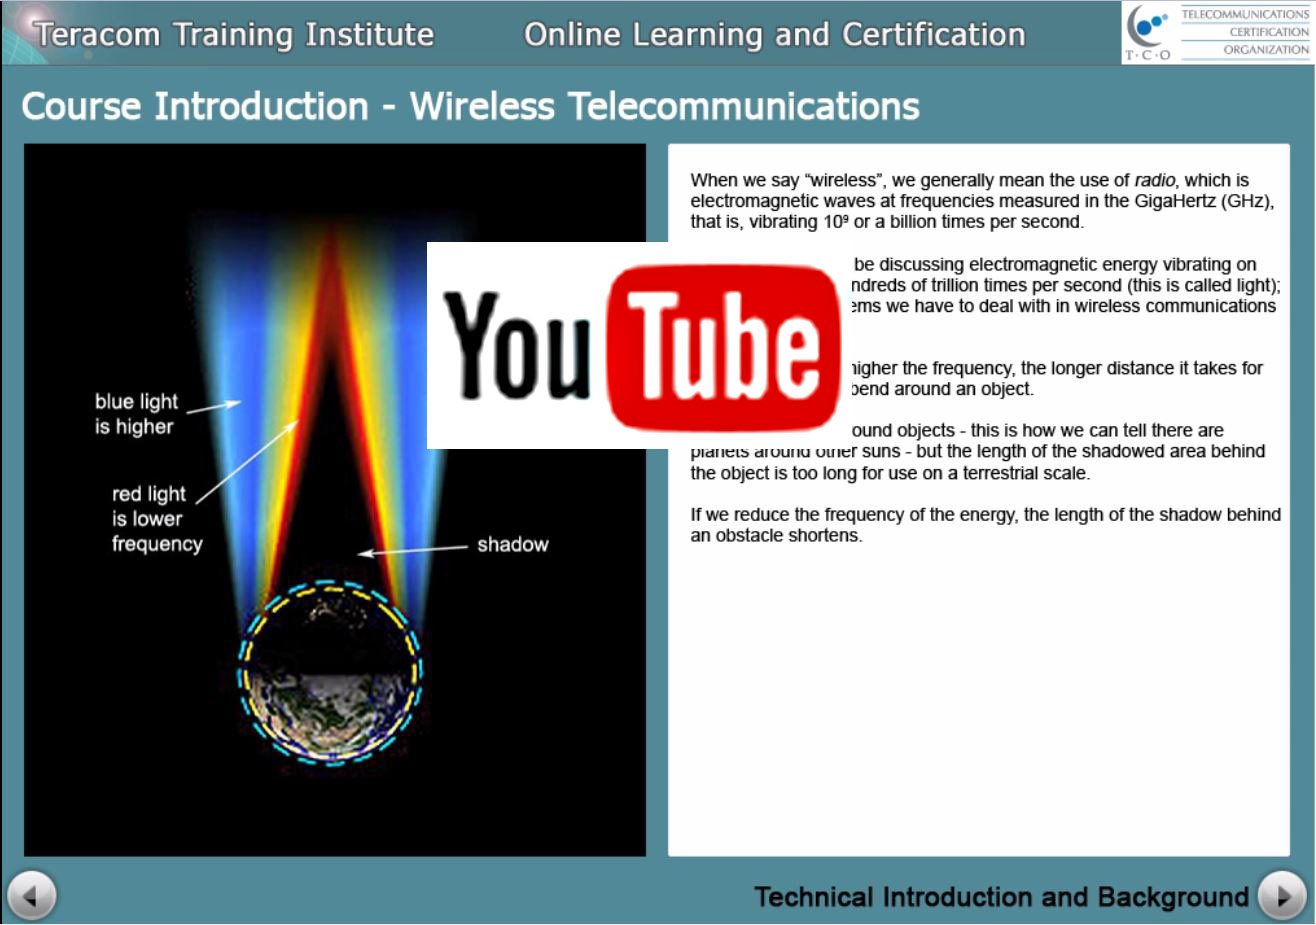 Course 2206 Wireless Telecommunications - Introduction